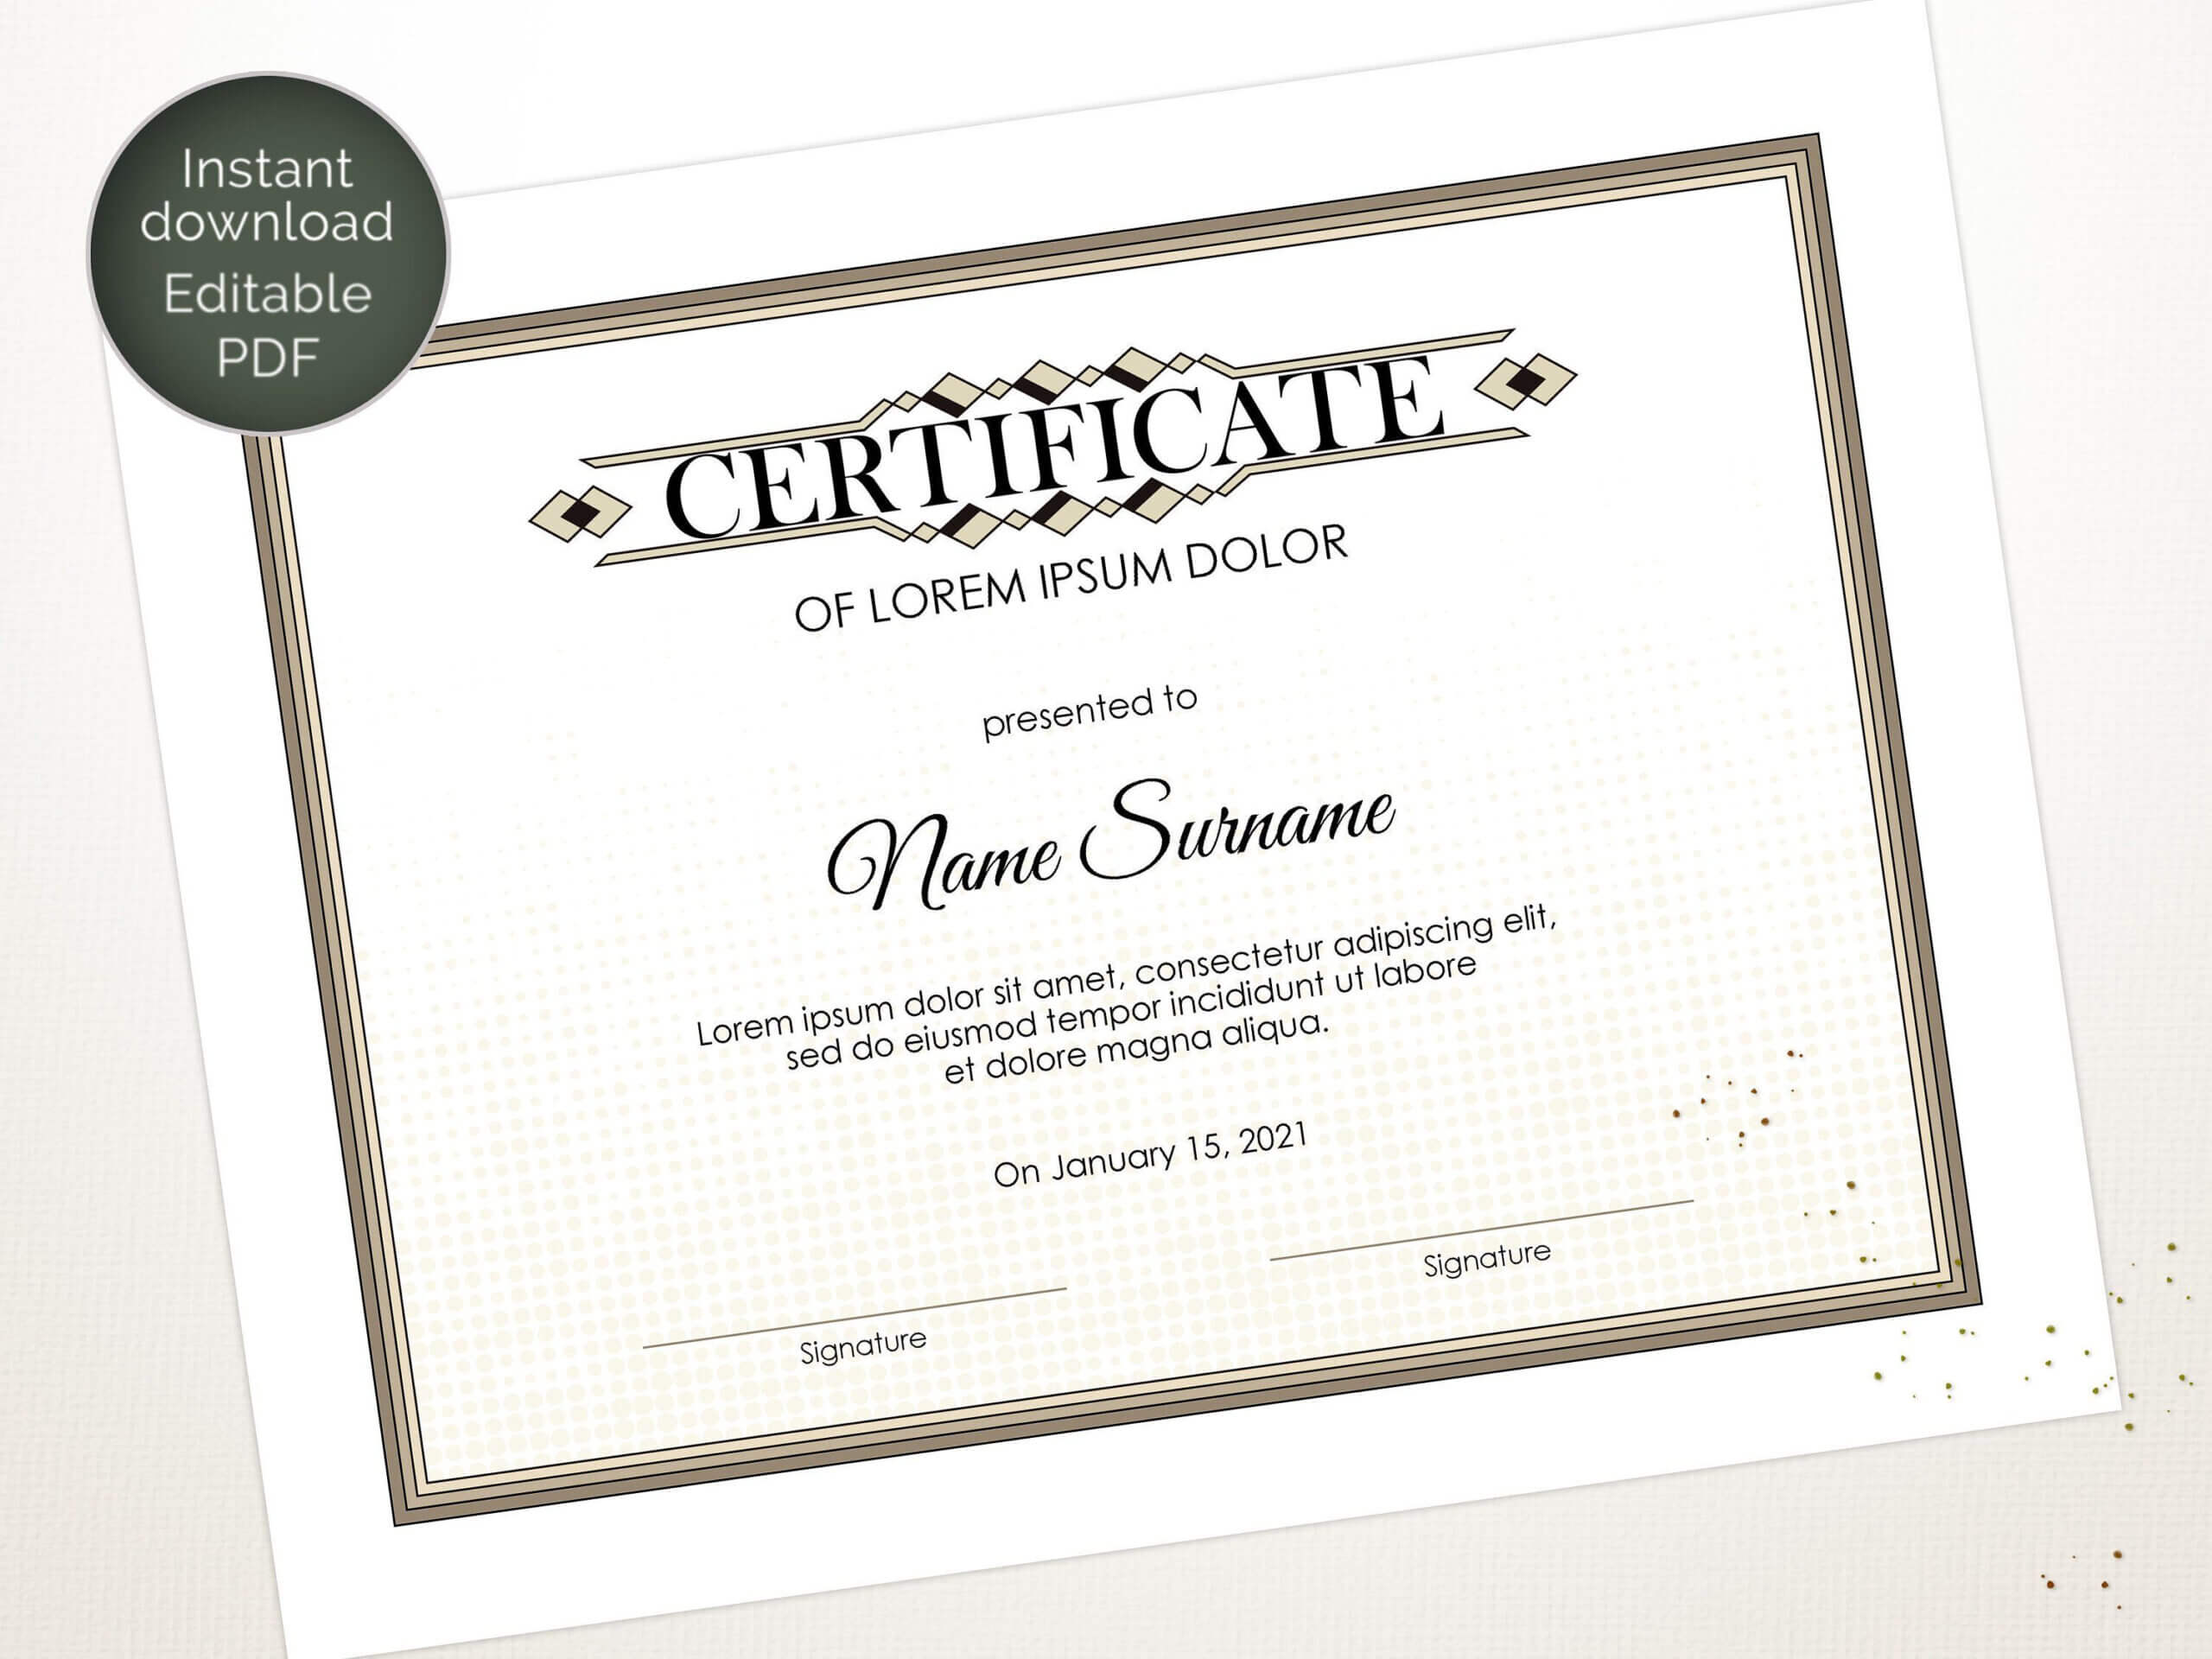 Editable Certificate Template, Blank Business Certificate For Update Certificates That Use Certificate Templates